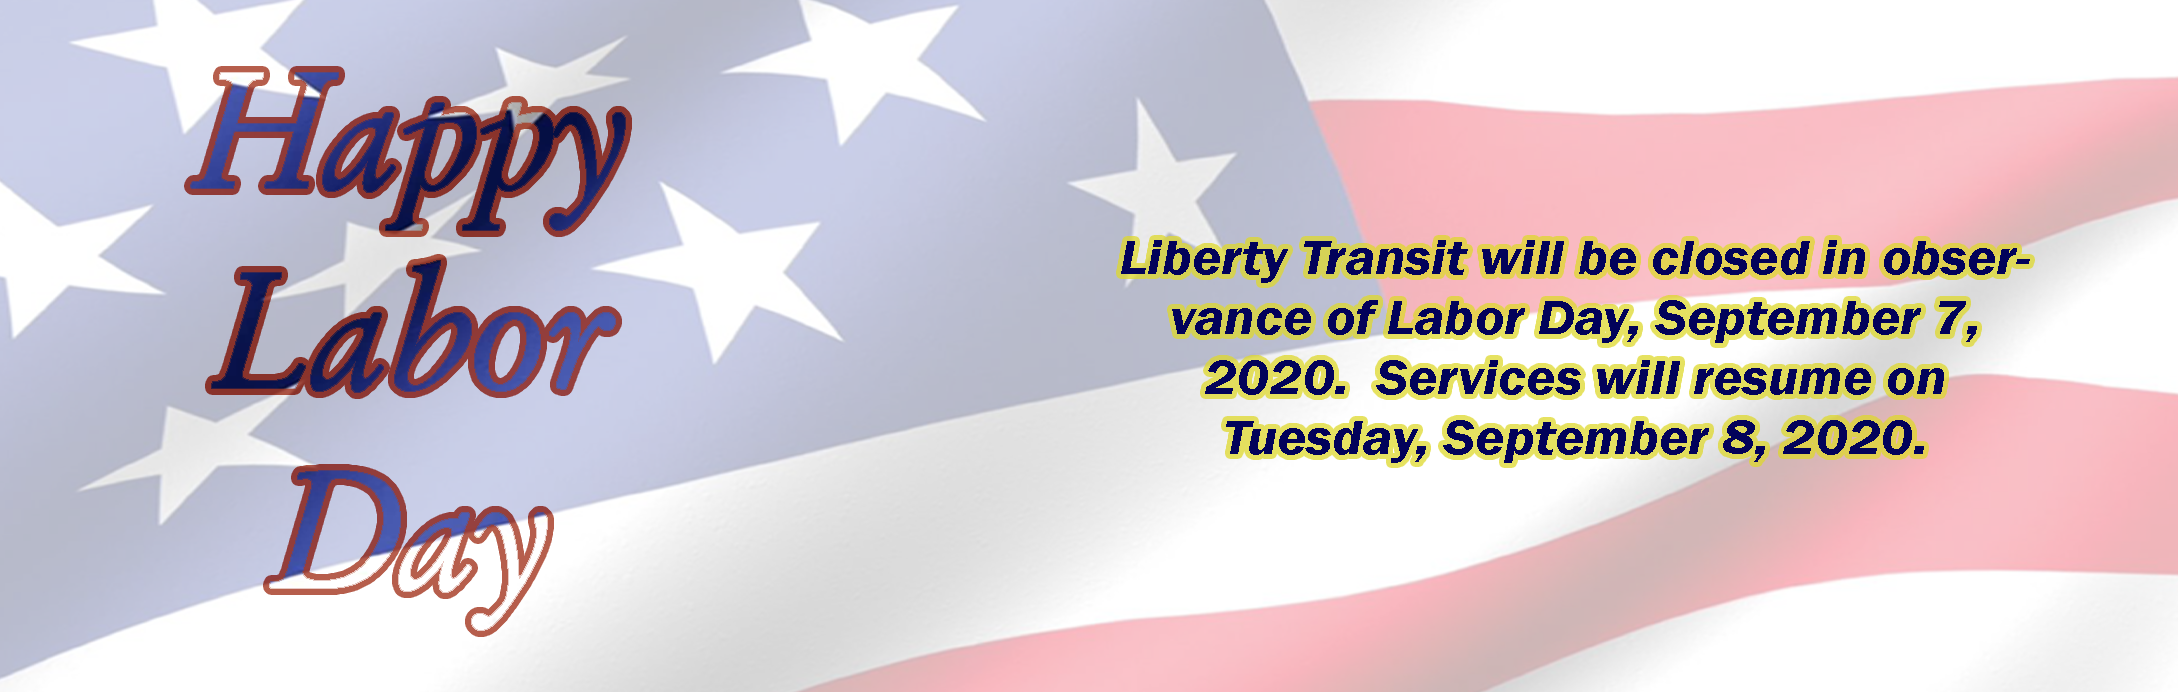 2020 Labor Day Liberty Transit will be closed in observance of Labor Day September 7th and will reopen on September 8th.